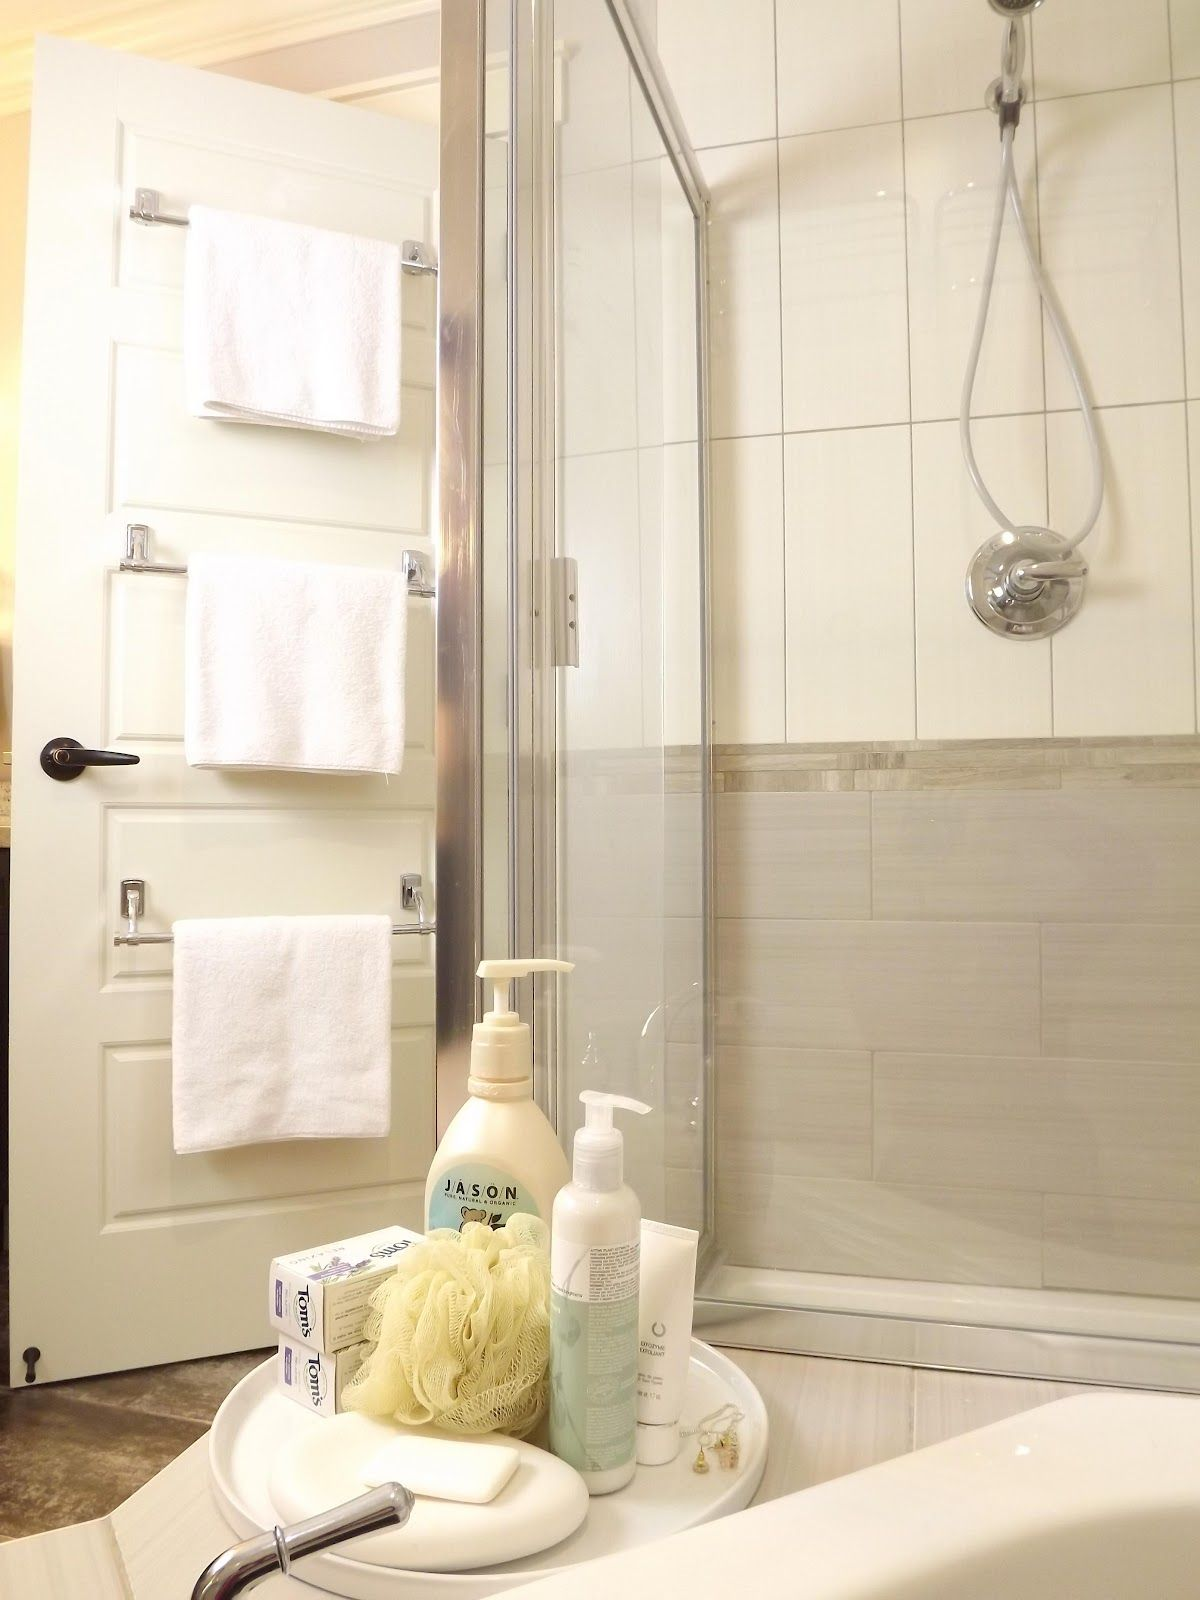 Attach Multiple Towel Bars To The Back Of The Bathroom Door For - Bath towel hanging ideas for small bathroom ideas